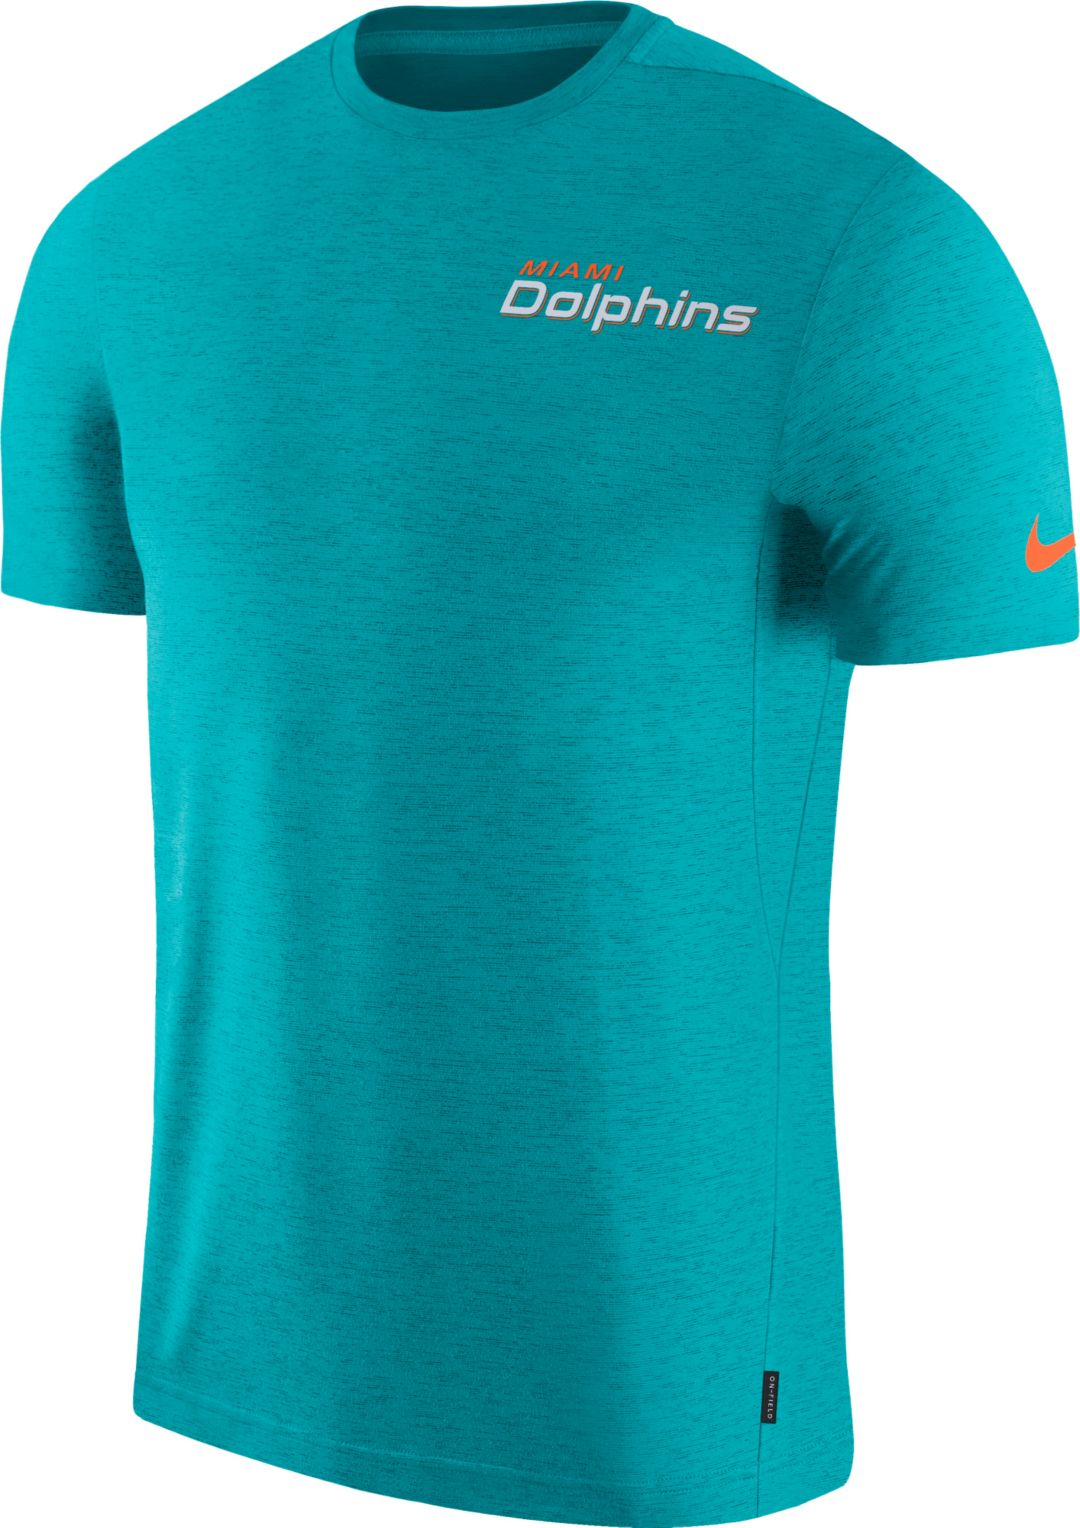 the best attitude 8d39b 94f0f Nike Men s Miami Dolphins Sideline Coach Performance Aqua T-Shirt.  noImageFound. Previous. 1